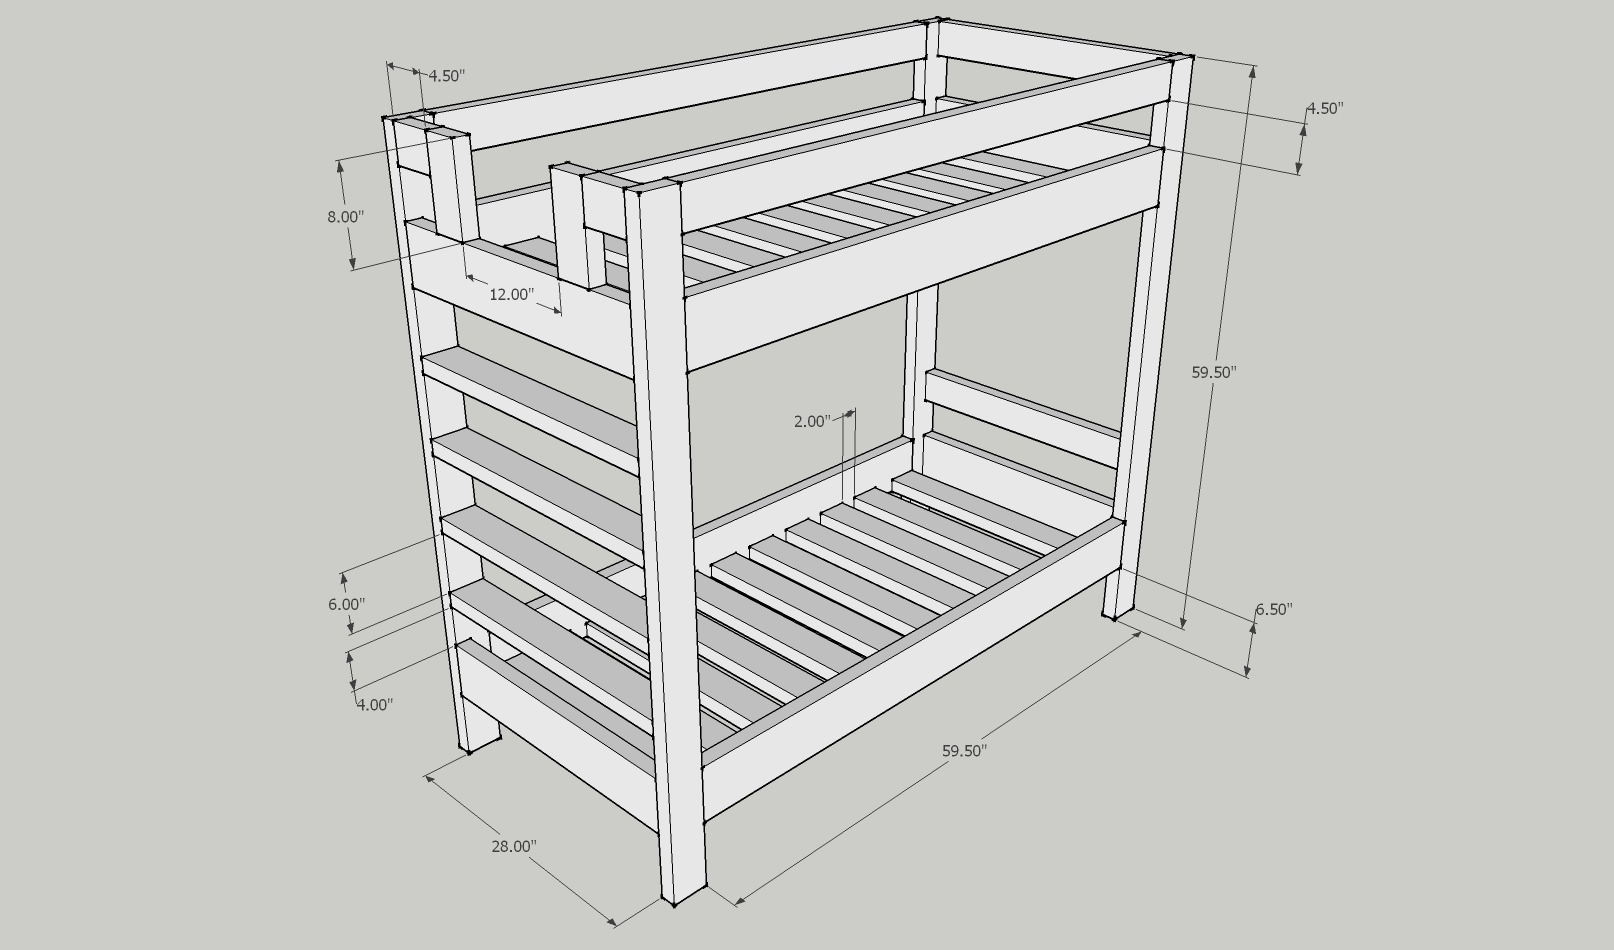 2x4 bunk bed plans Easy to build bed plans These bed plans